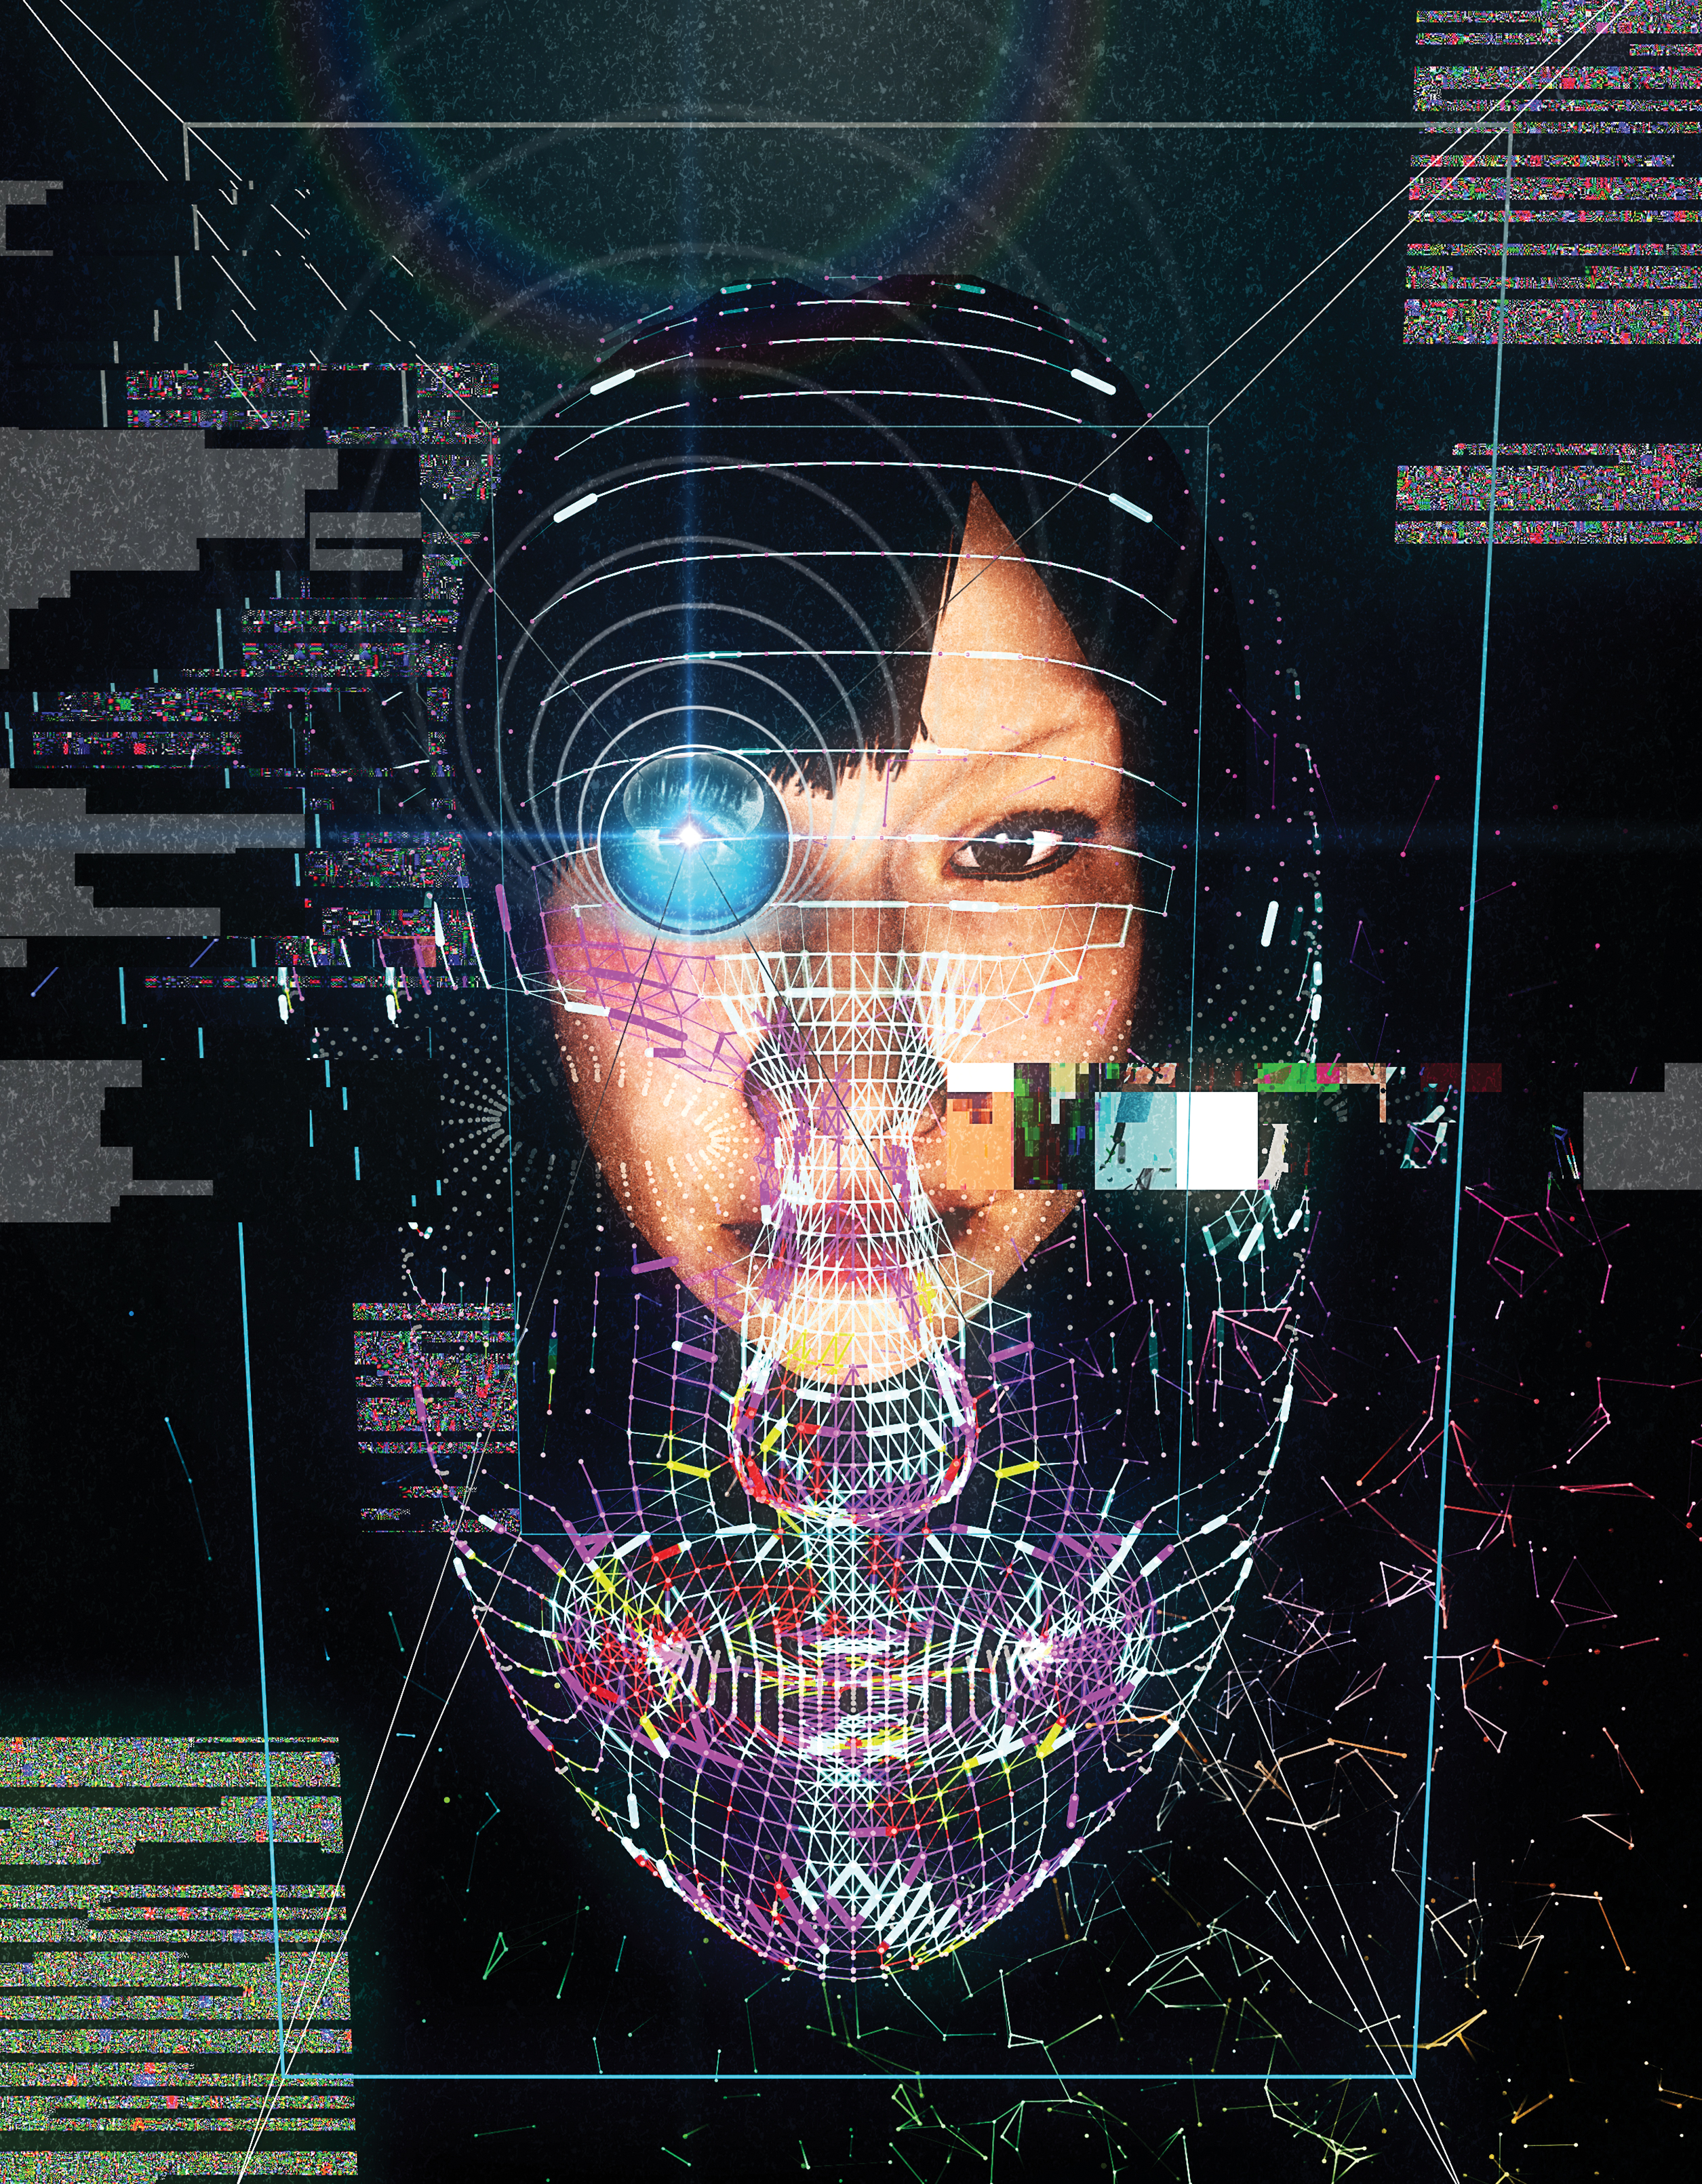 """<b><a href=""""https://www.technologyreview.com/s/603494/10-breakthrough-technologies-2017-paying-with-your-face/"""">Paying With Your Face</a></b> <br> Illustration by Yoshi Sodeoka"""